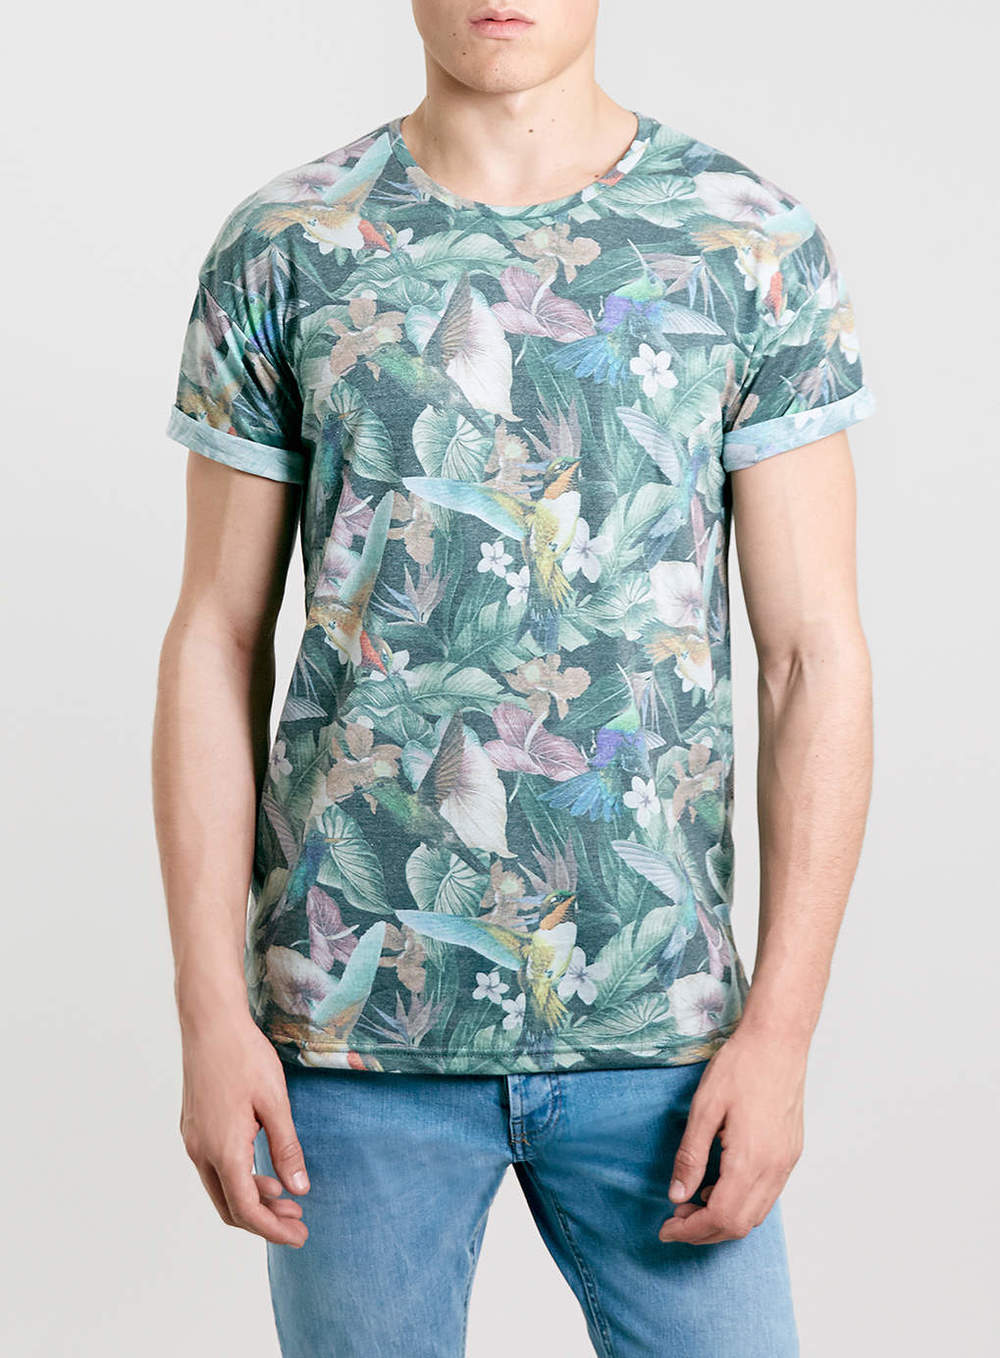 Tropical Birds Roller T-shirt, $40 at Topman *